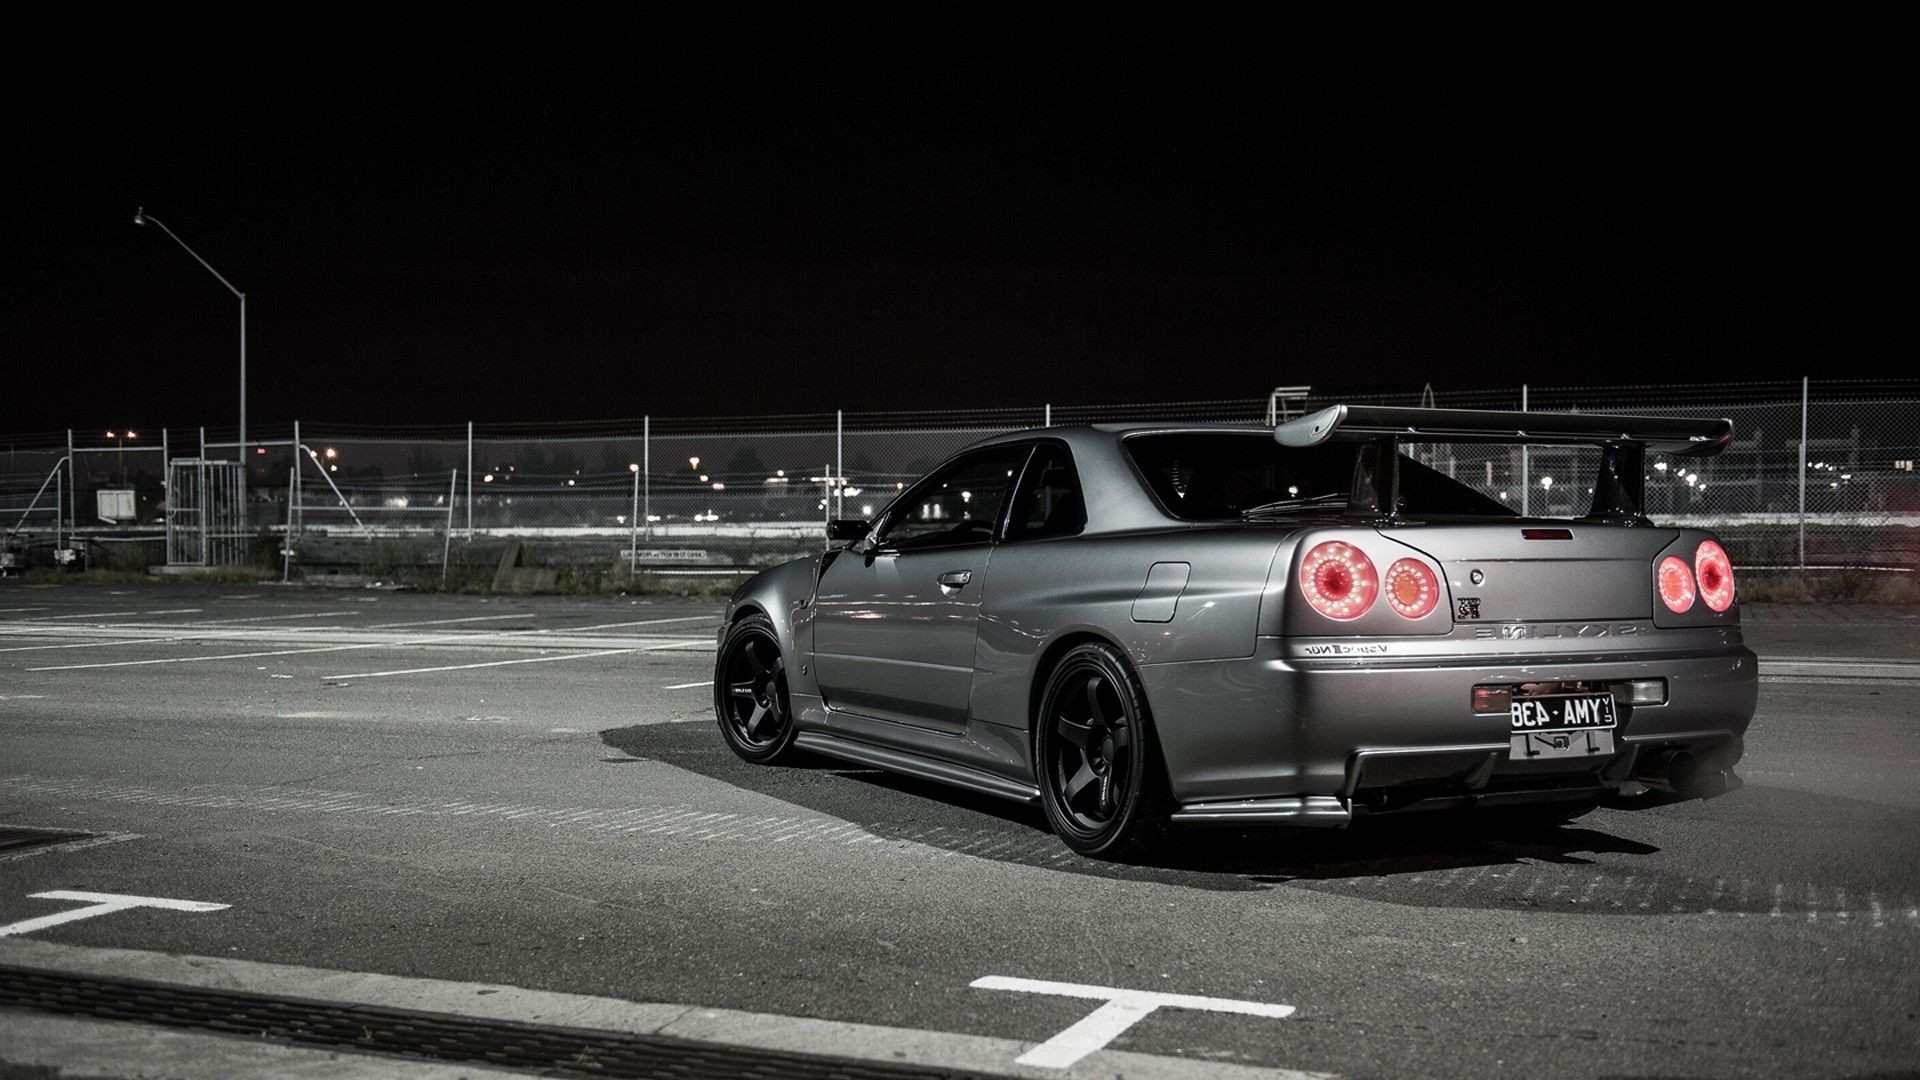 nissan skyline gtr wallpaper. Black Bedroom Furniture Sets. Home Design Ideas